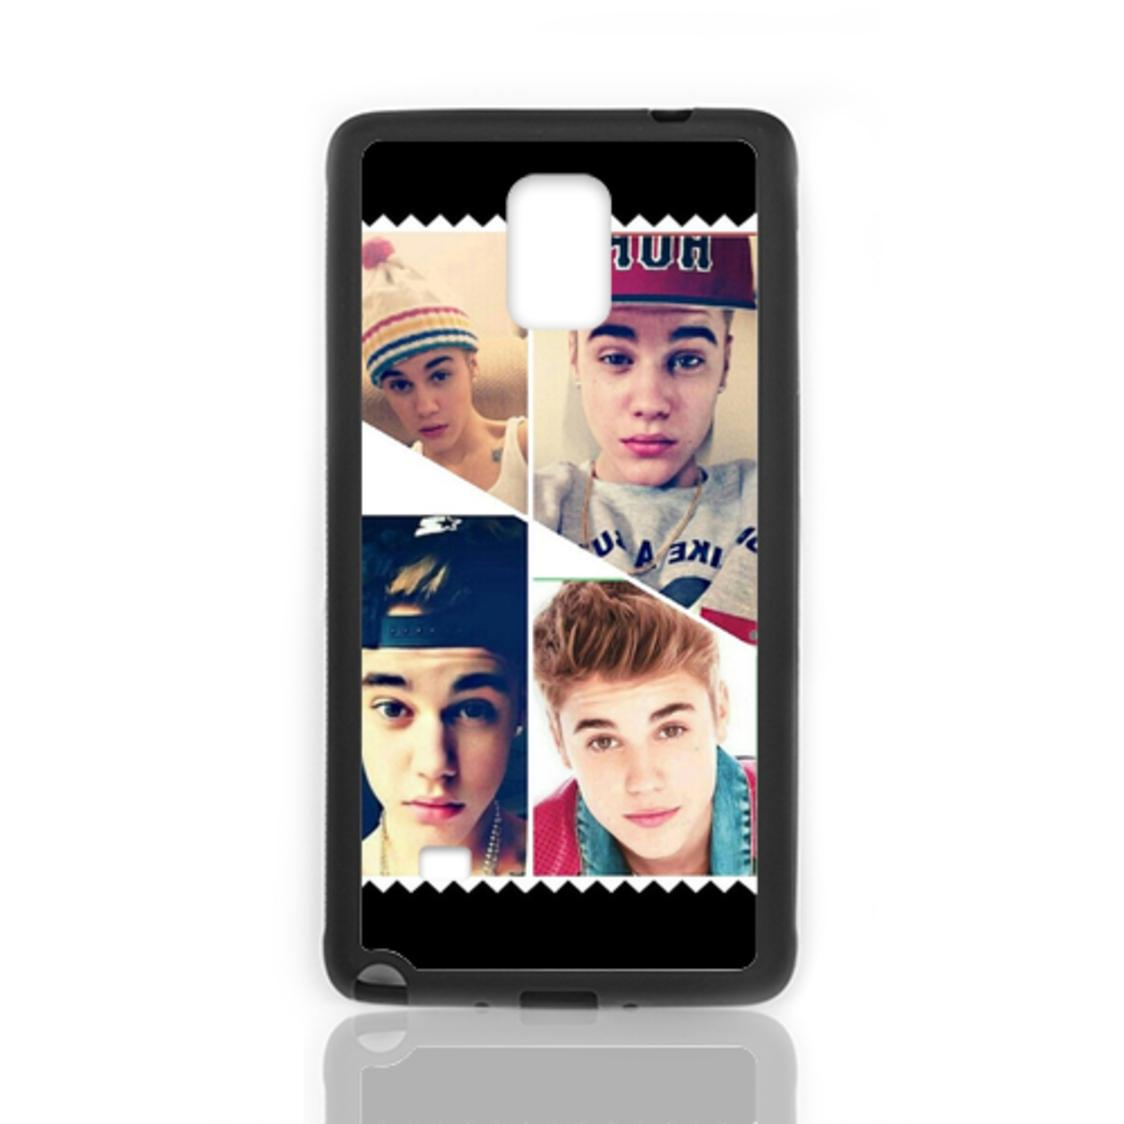 Uncategorized Justin Bieber Puzzle cool justin bieber the puzzle for samsung s5 note2 n7100 note3 n900 note4 hard plastic cell phone case jeweled phon